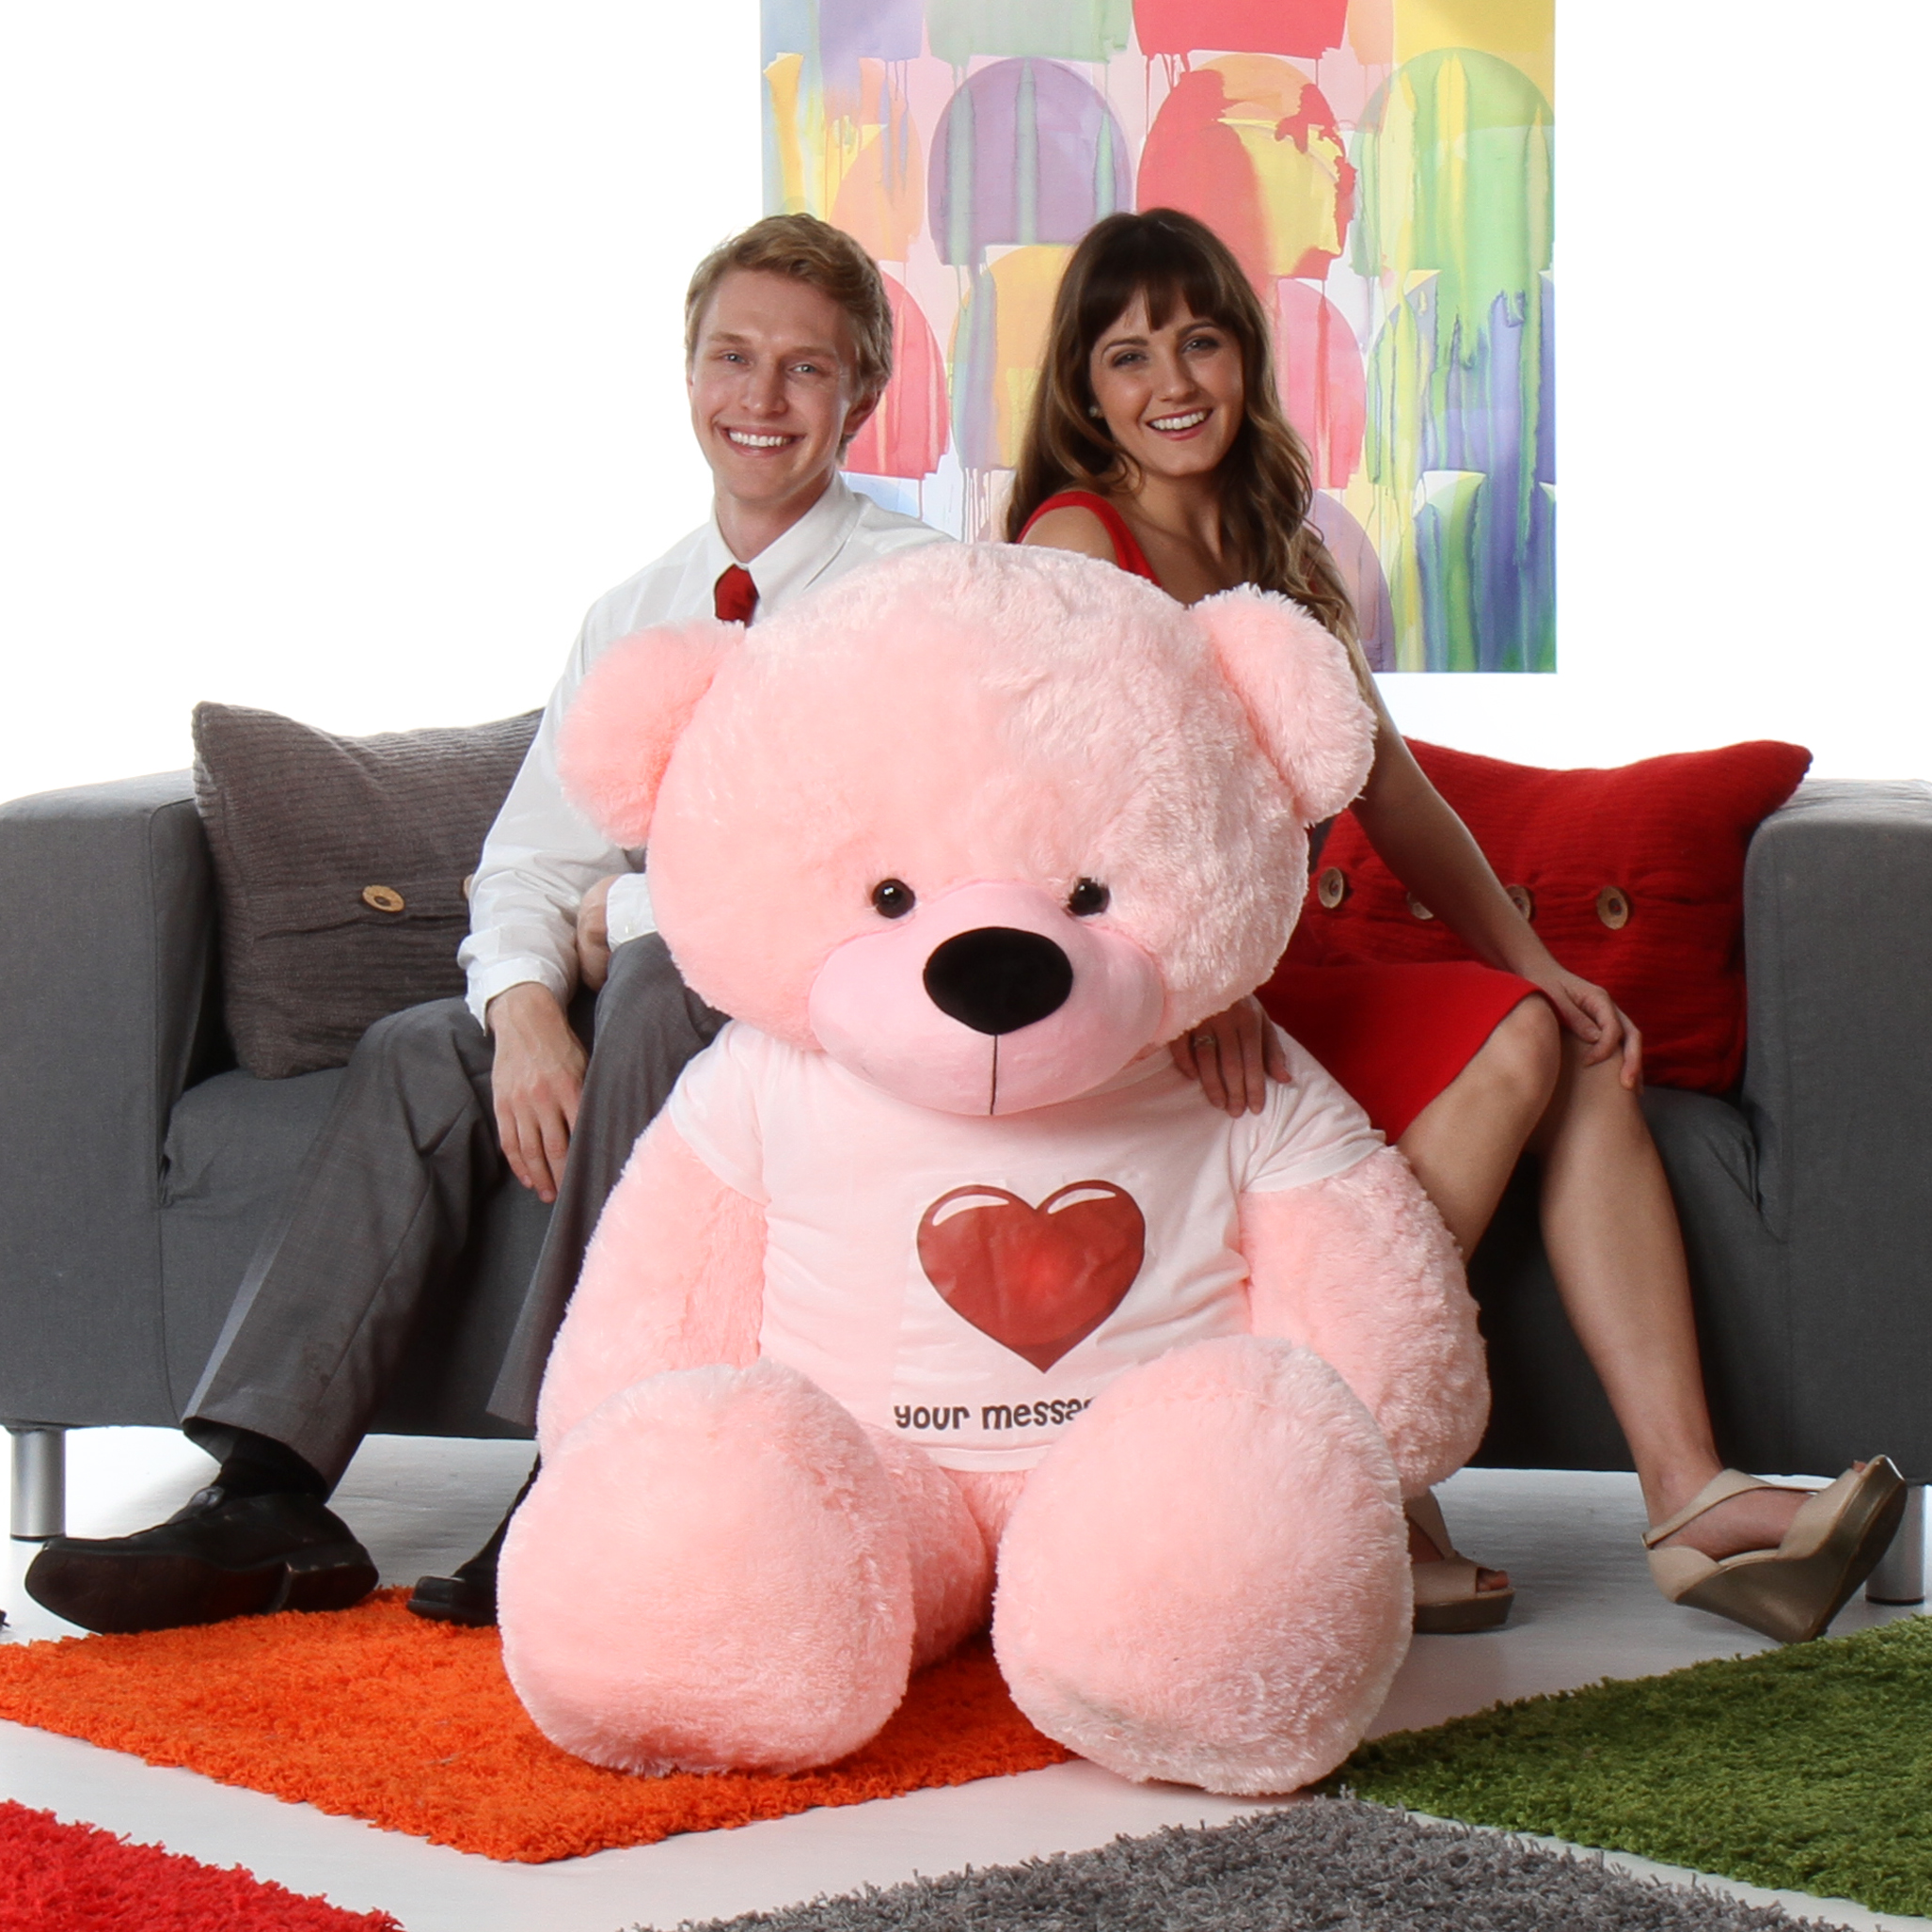 6ft-life-size-huge-personalized-pink-teddy-bear-famous-lady-cuddles-from-giant-teddy-brand-1.jpg